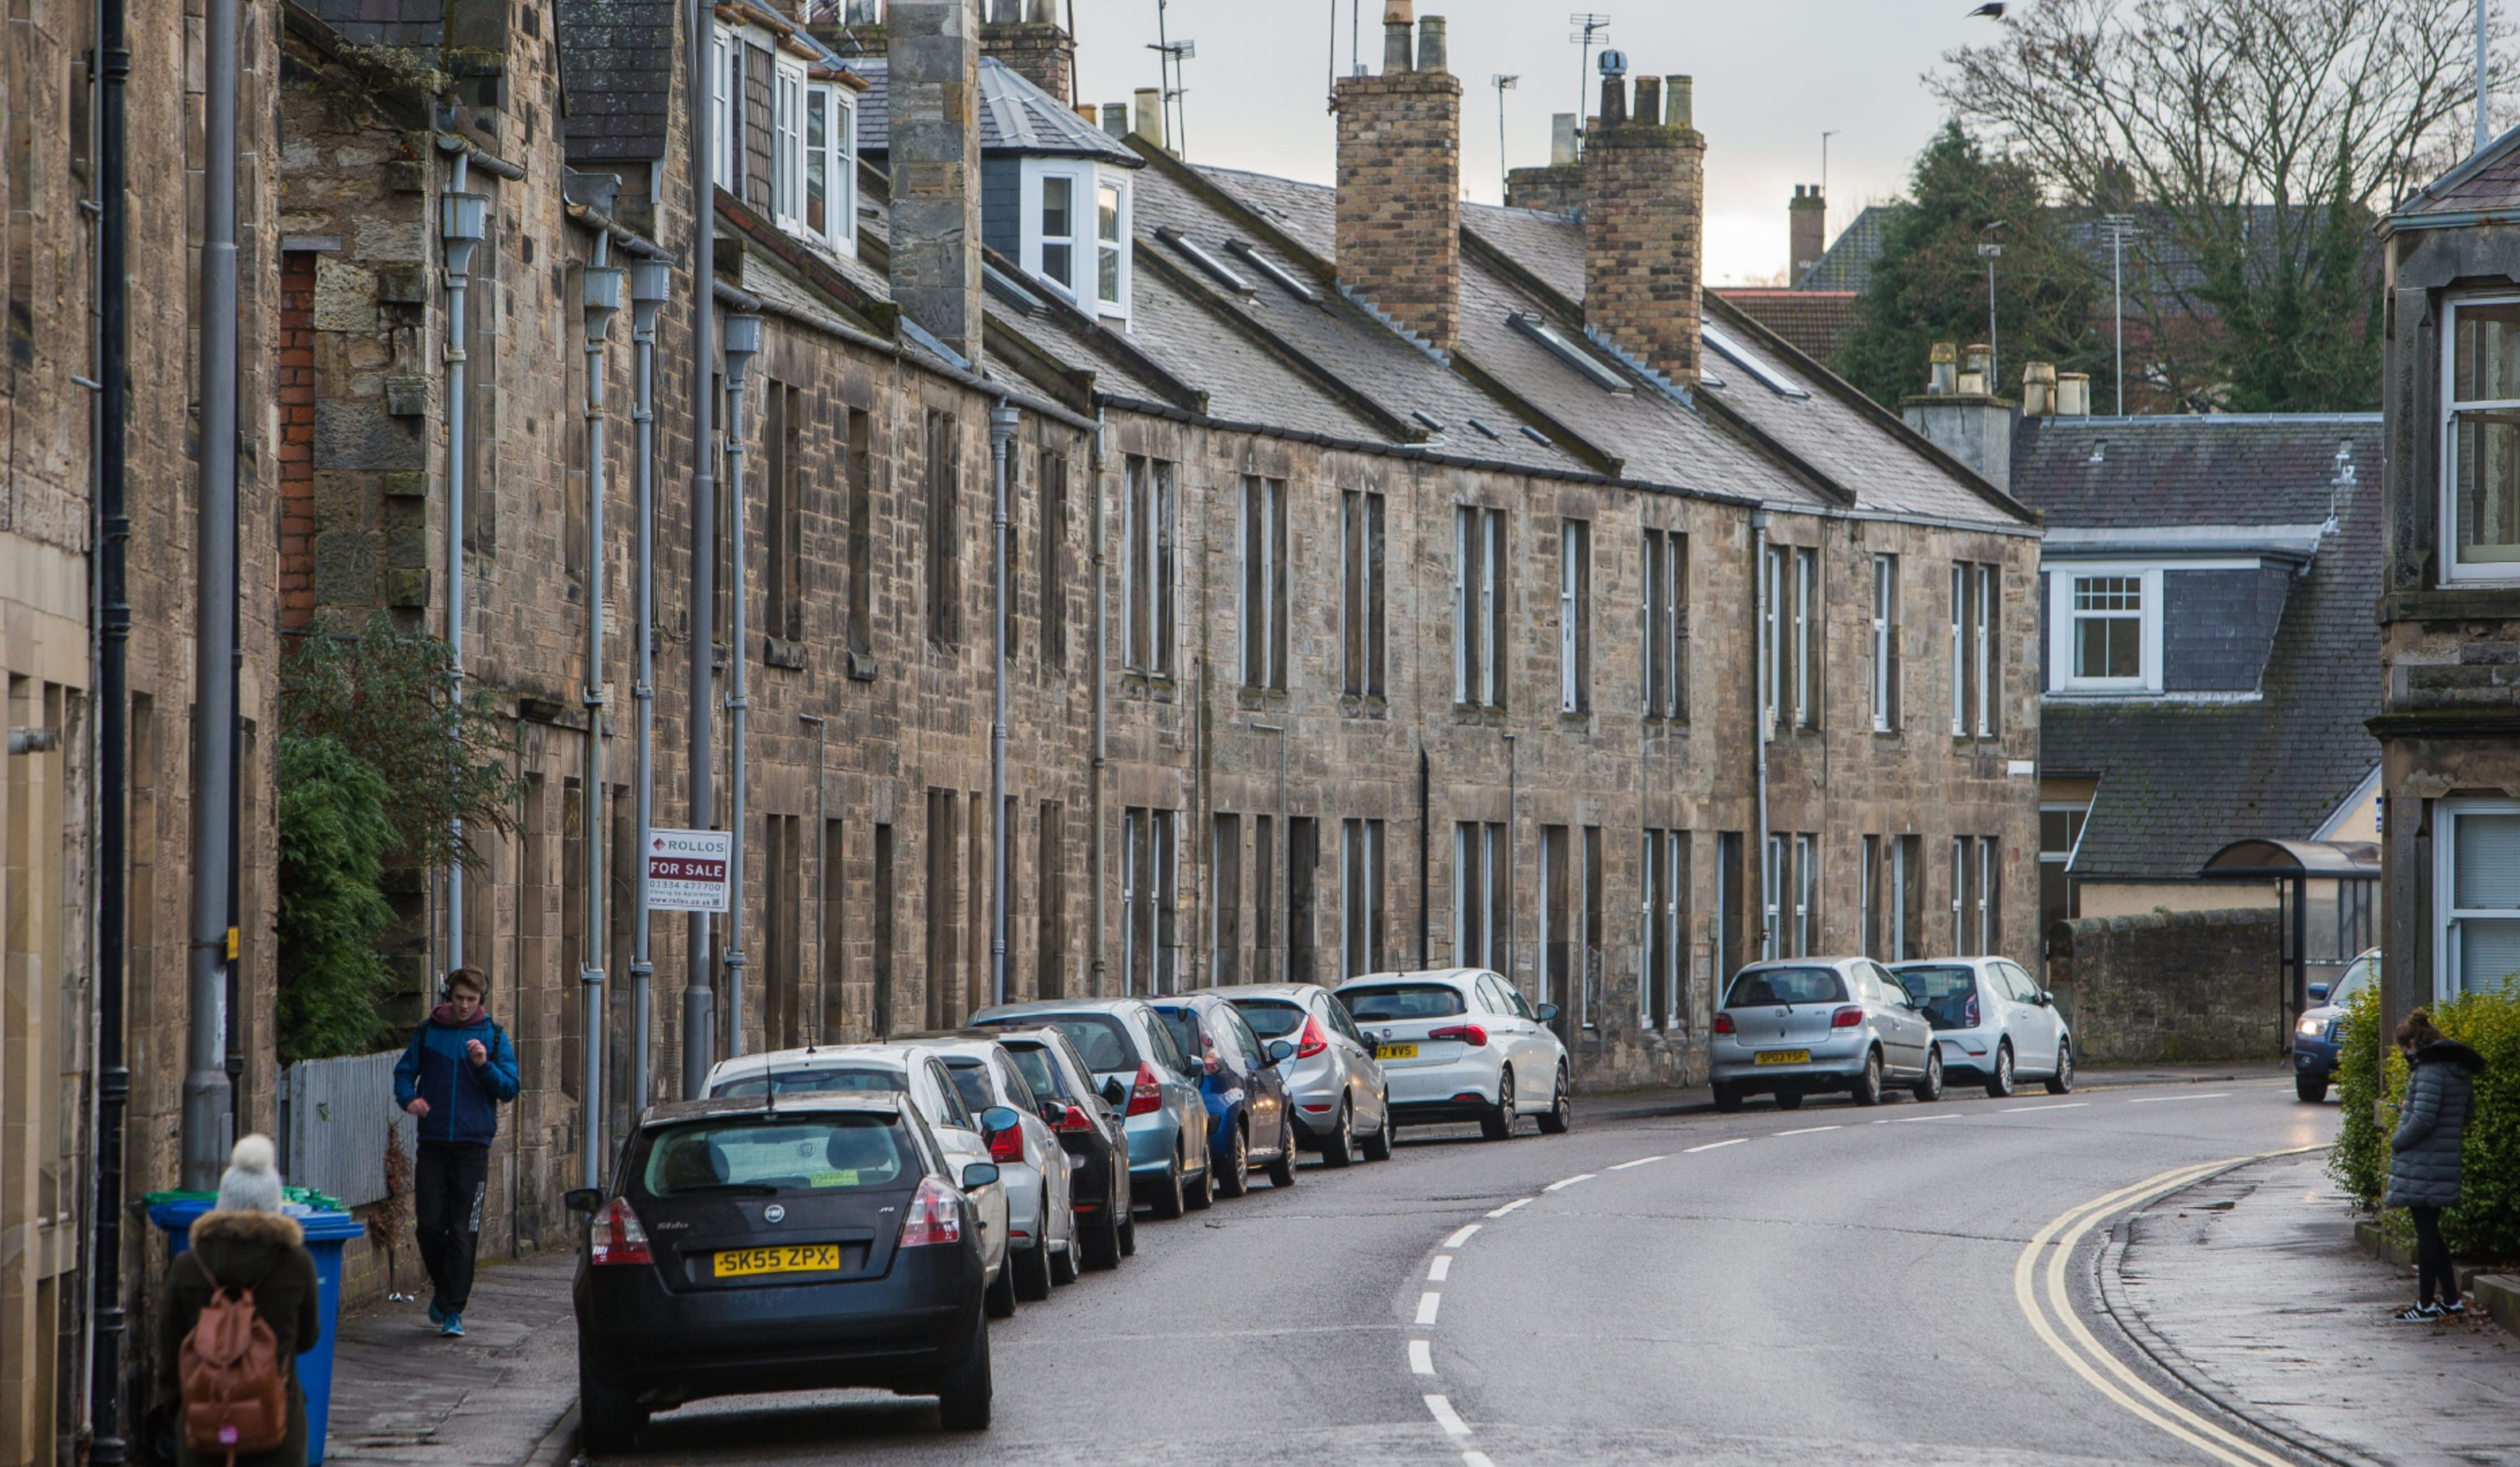 Bridge Street in St Andrews, 54% of which are HMO